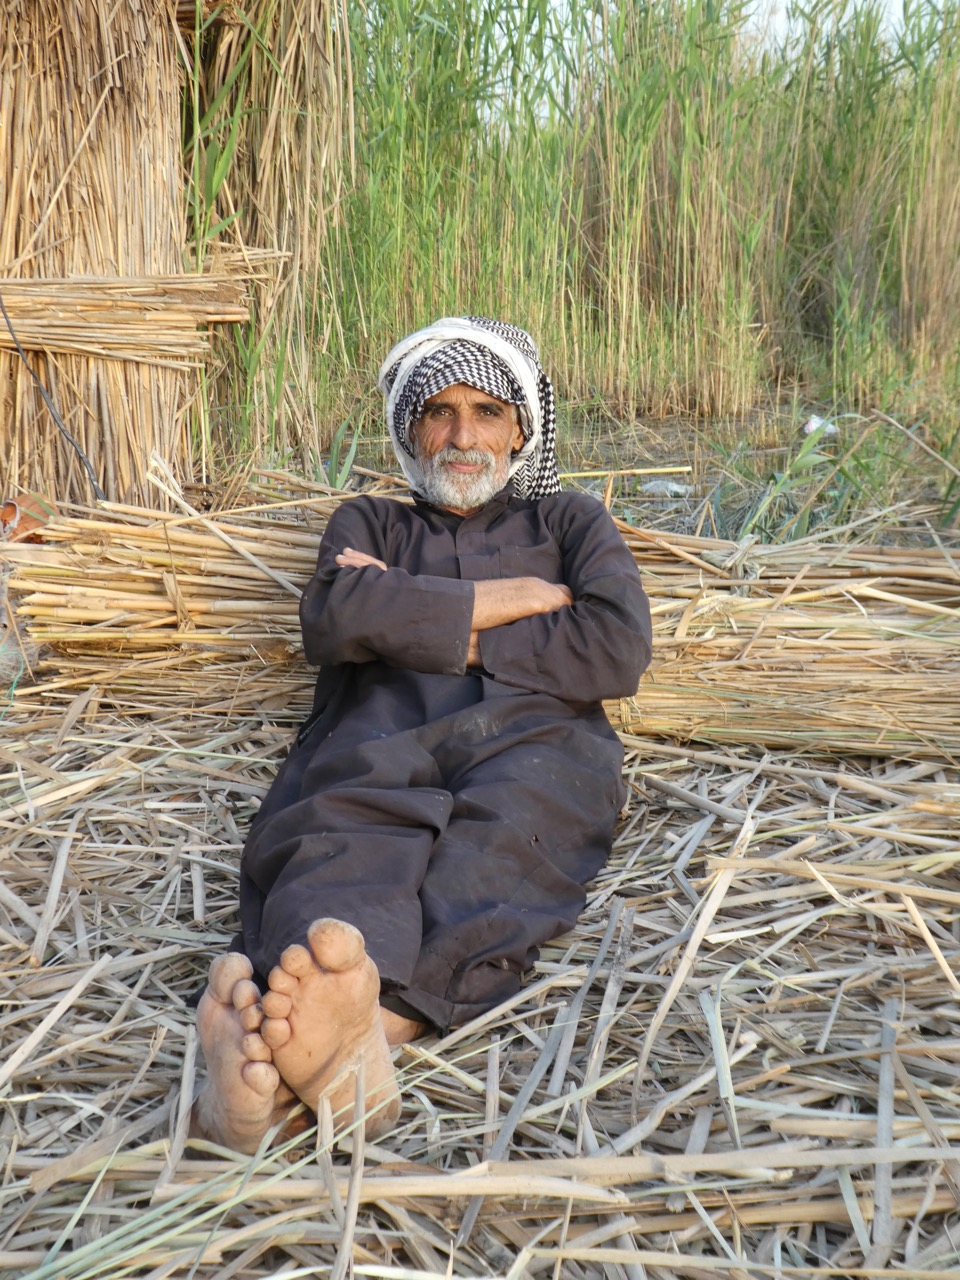 Hashim drove and poled our boat through the Mesopotamian marshes in Chibayish, Iraq. Here, he rests on an island made of Phragmites reeds over many generations. People in this area live on the water much as the ancient Sumerians did 5,000 years ago. Photo by Erica Gies.